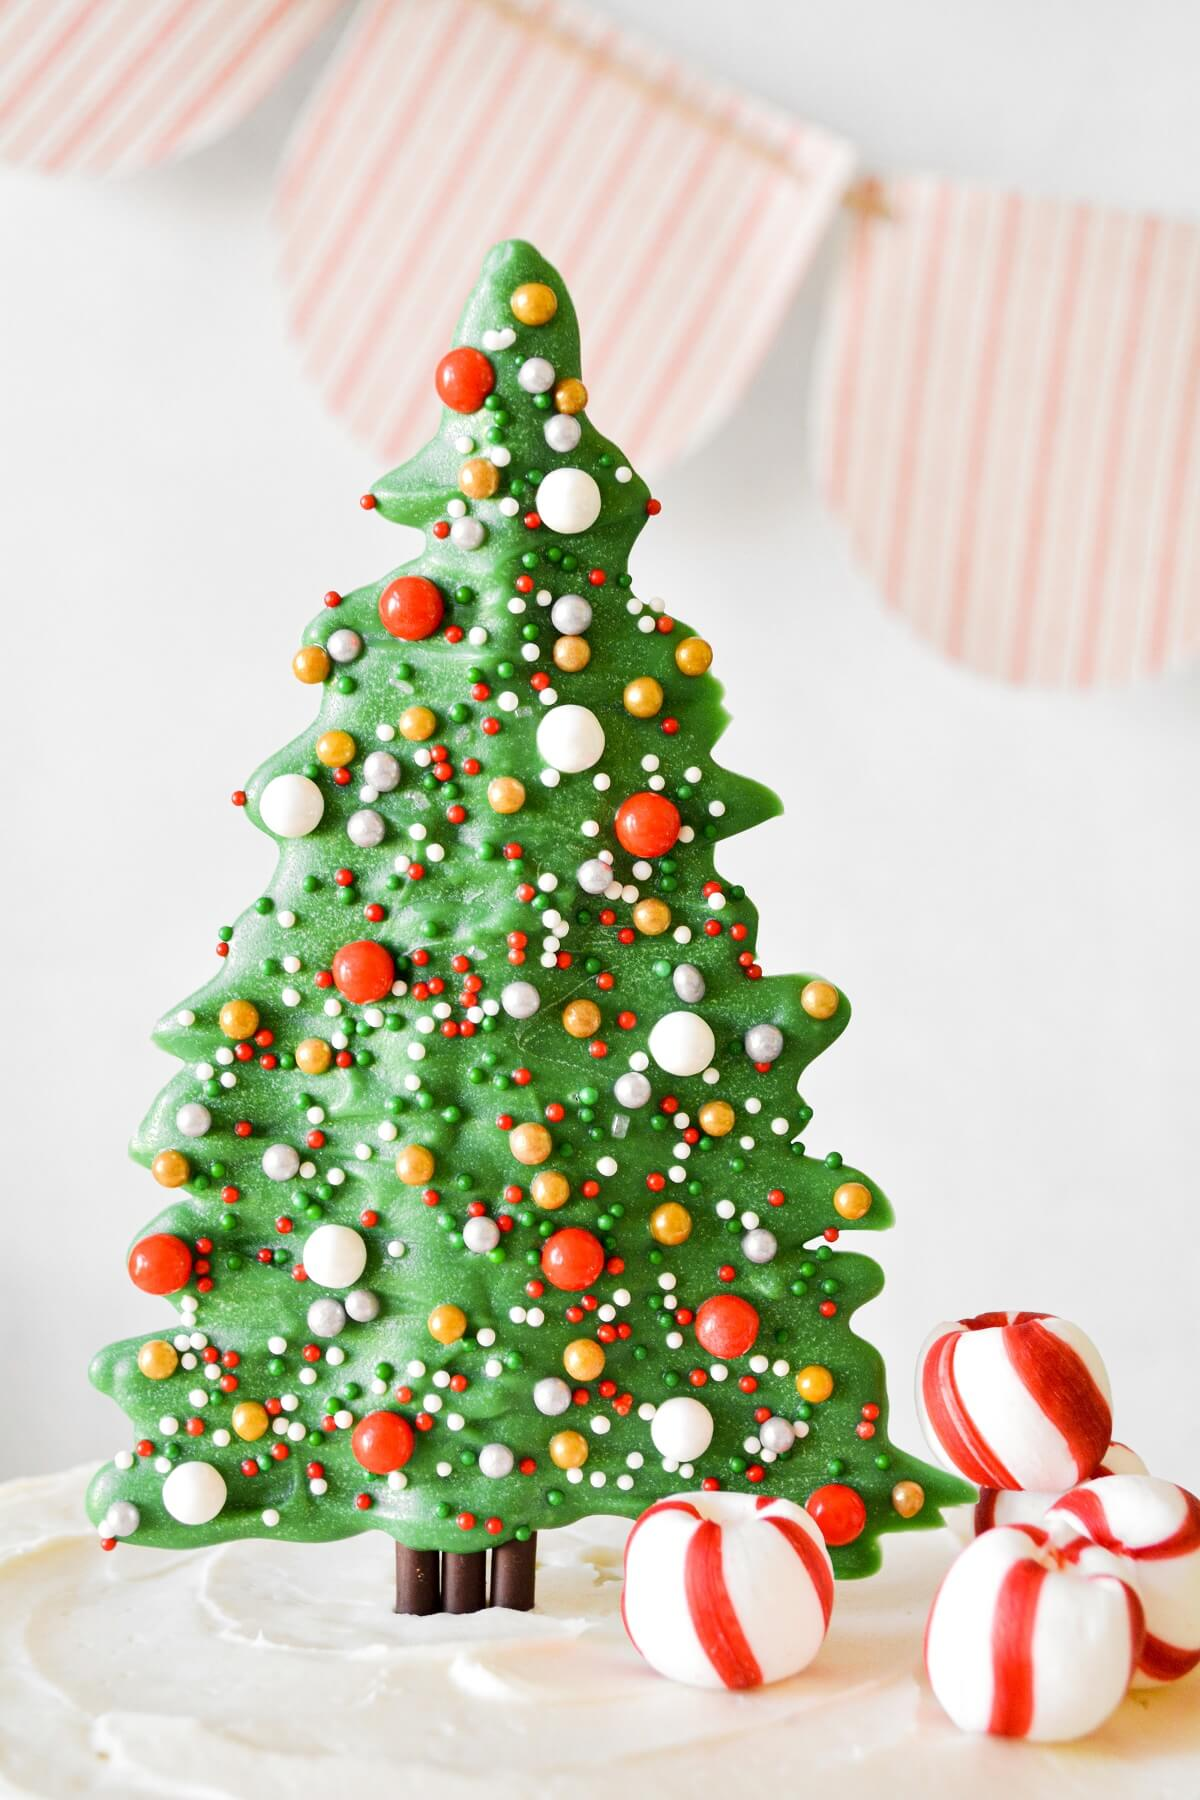 Candy Christmas tree cake topper with sprinkles, on top of a cake.